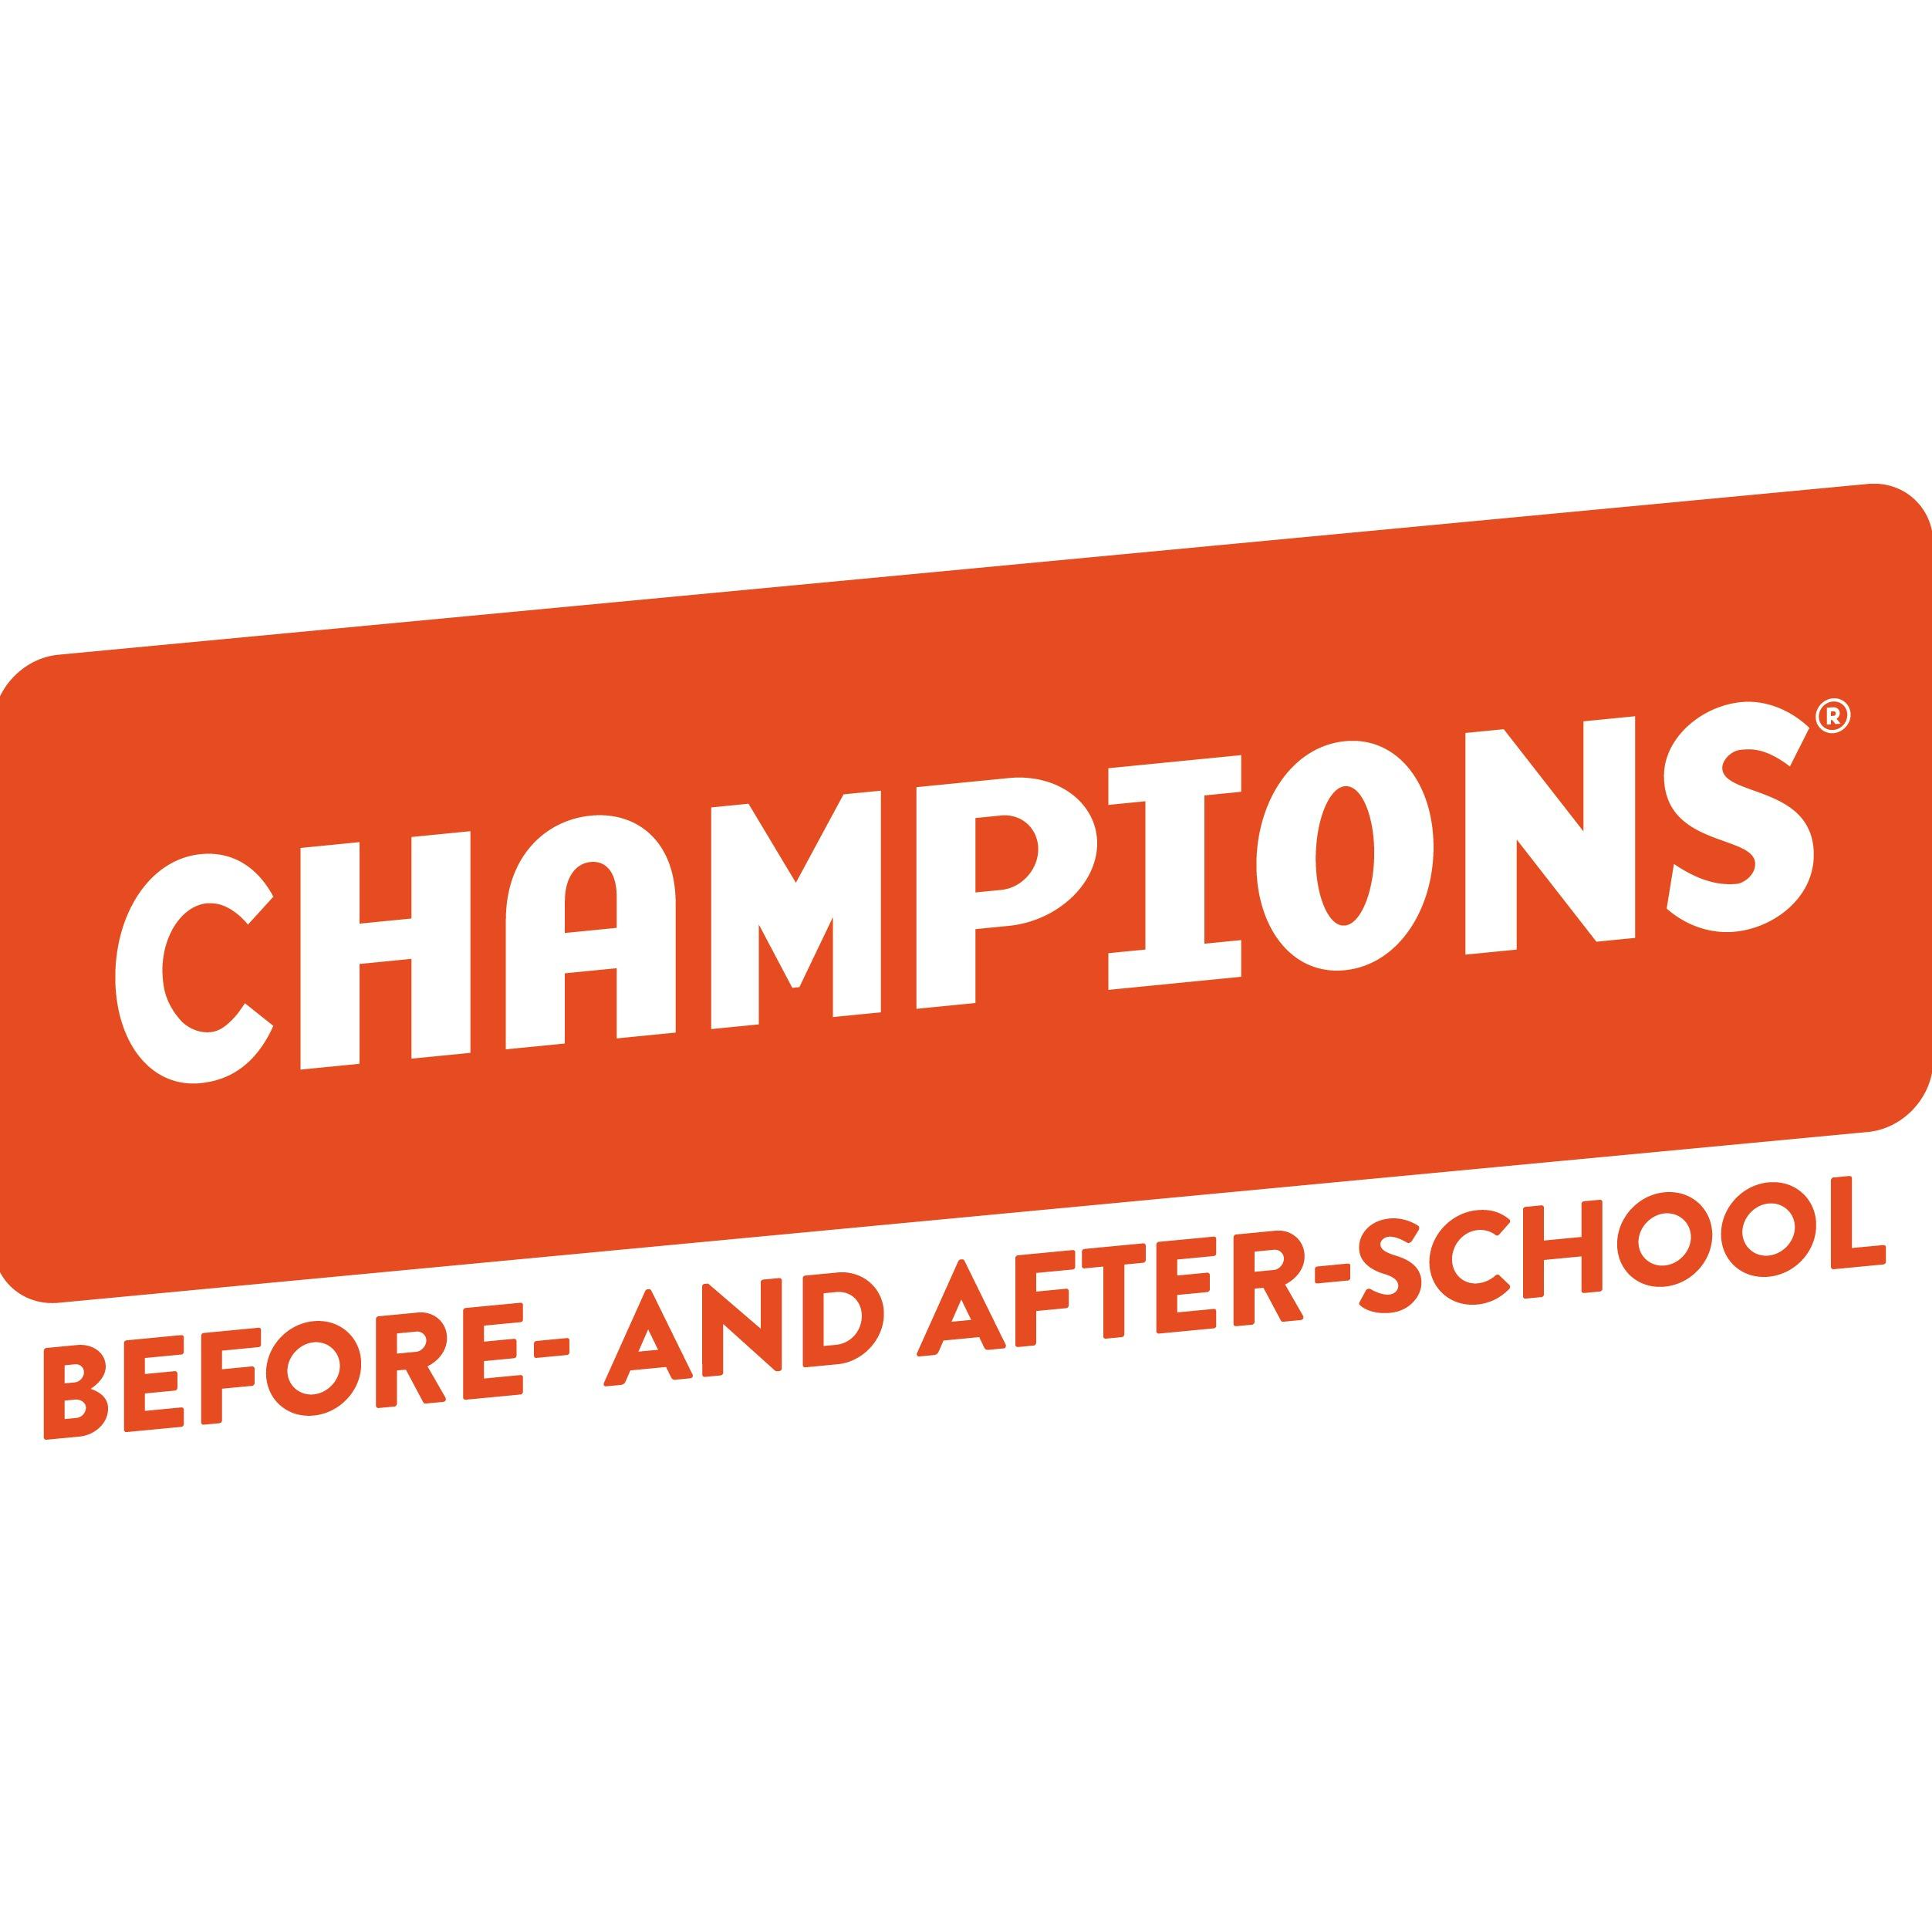 Champions at Guardian Catholic School